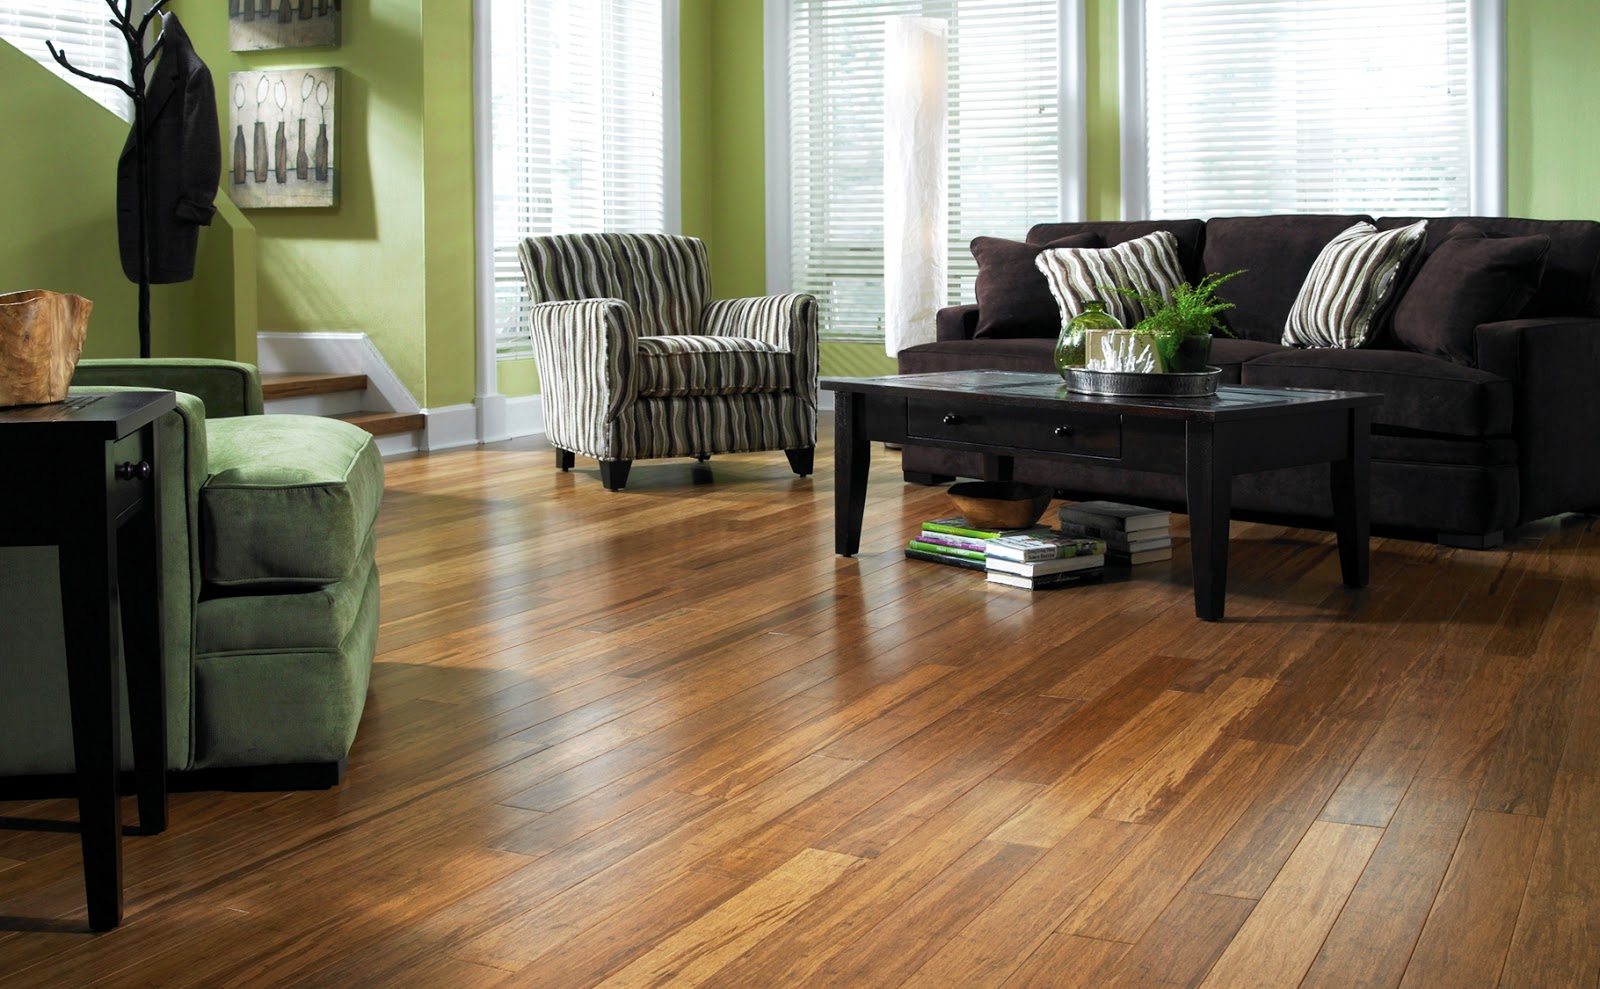 Most Inexpensive Types Of Flooring Ideas For Home Decor